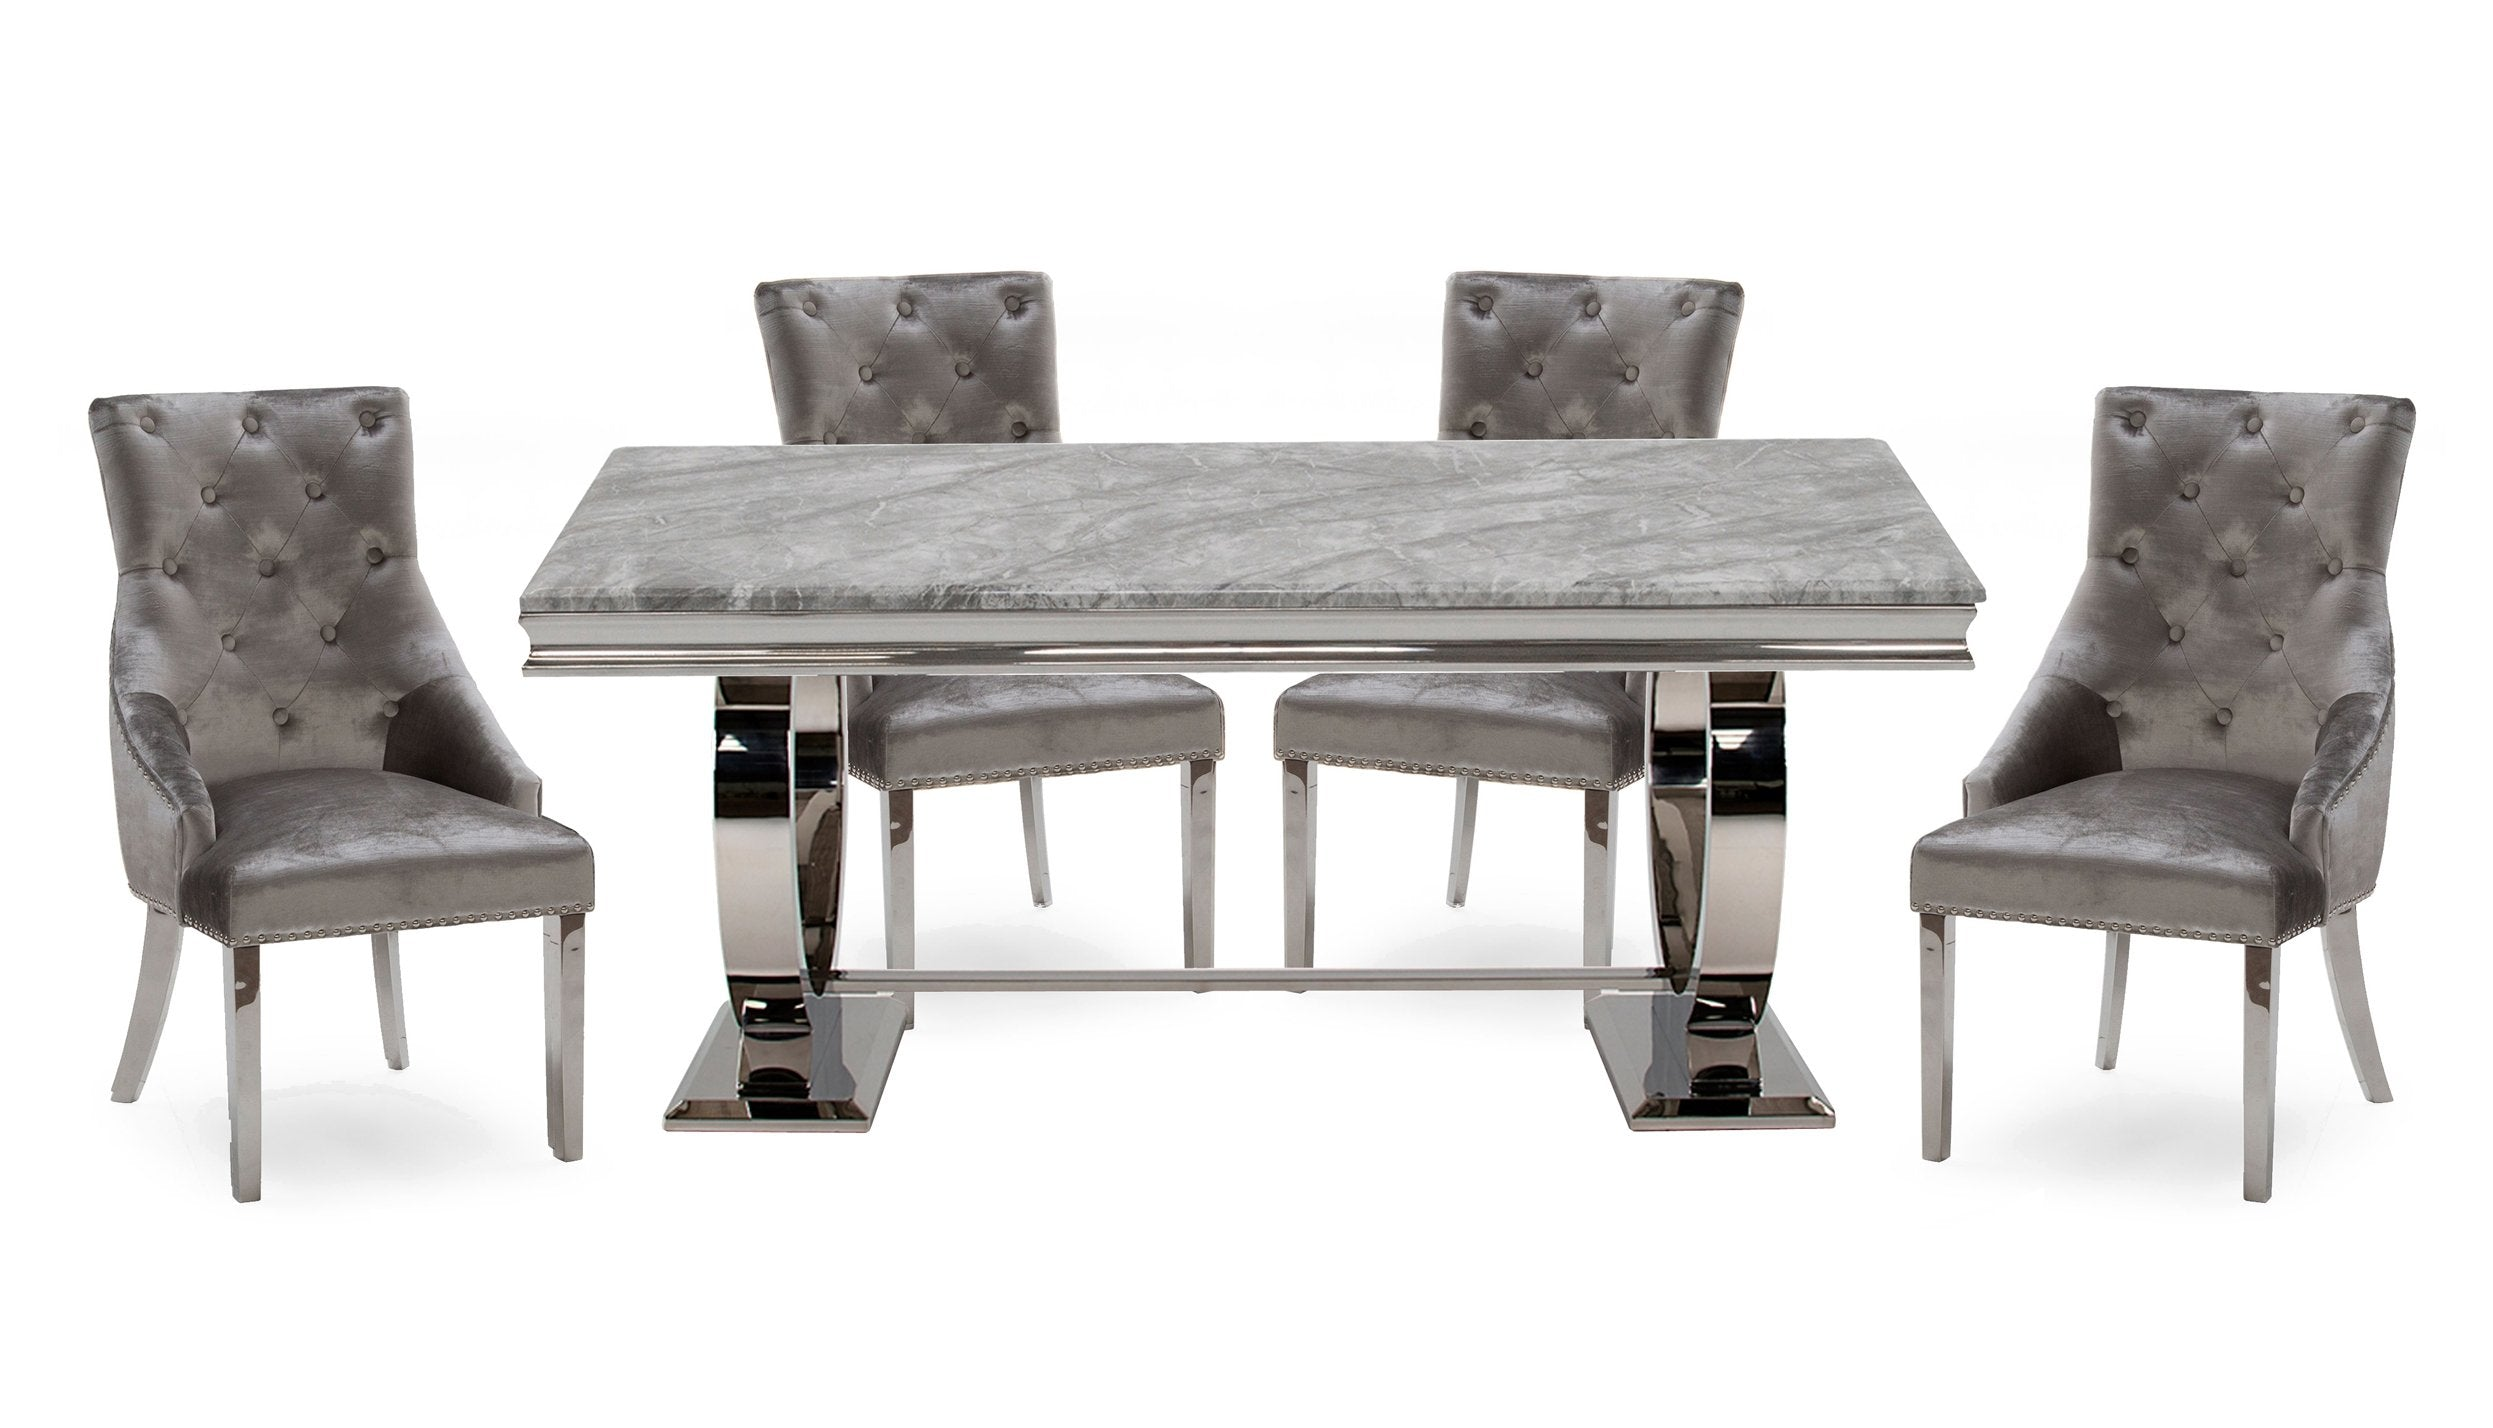 Romance Grey 2m Dining Table with 4 Chairs - AHF Furniture & Carpets